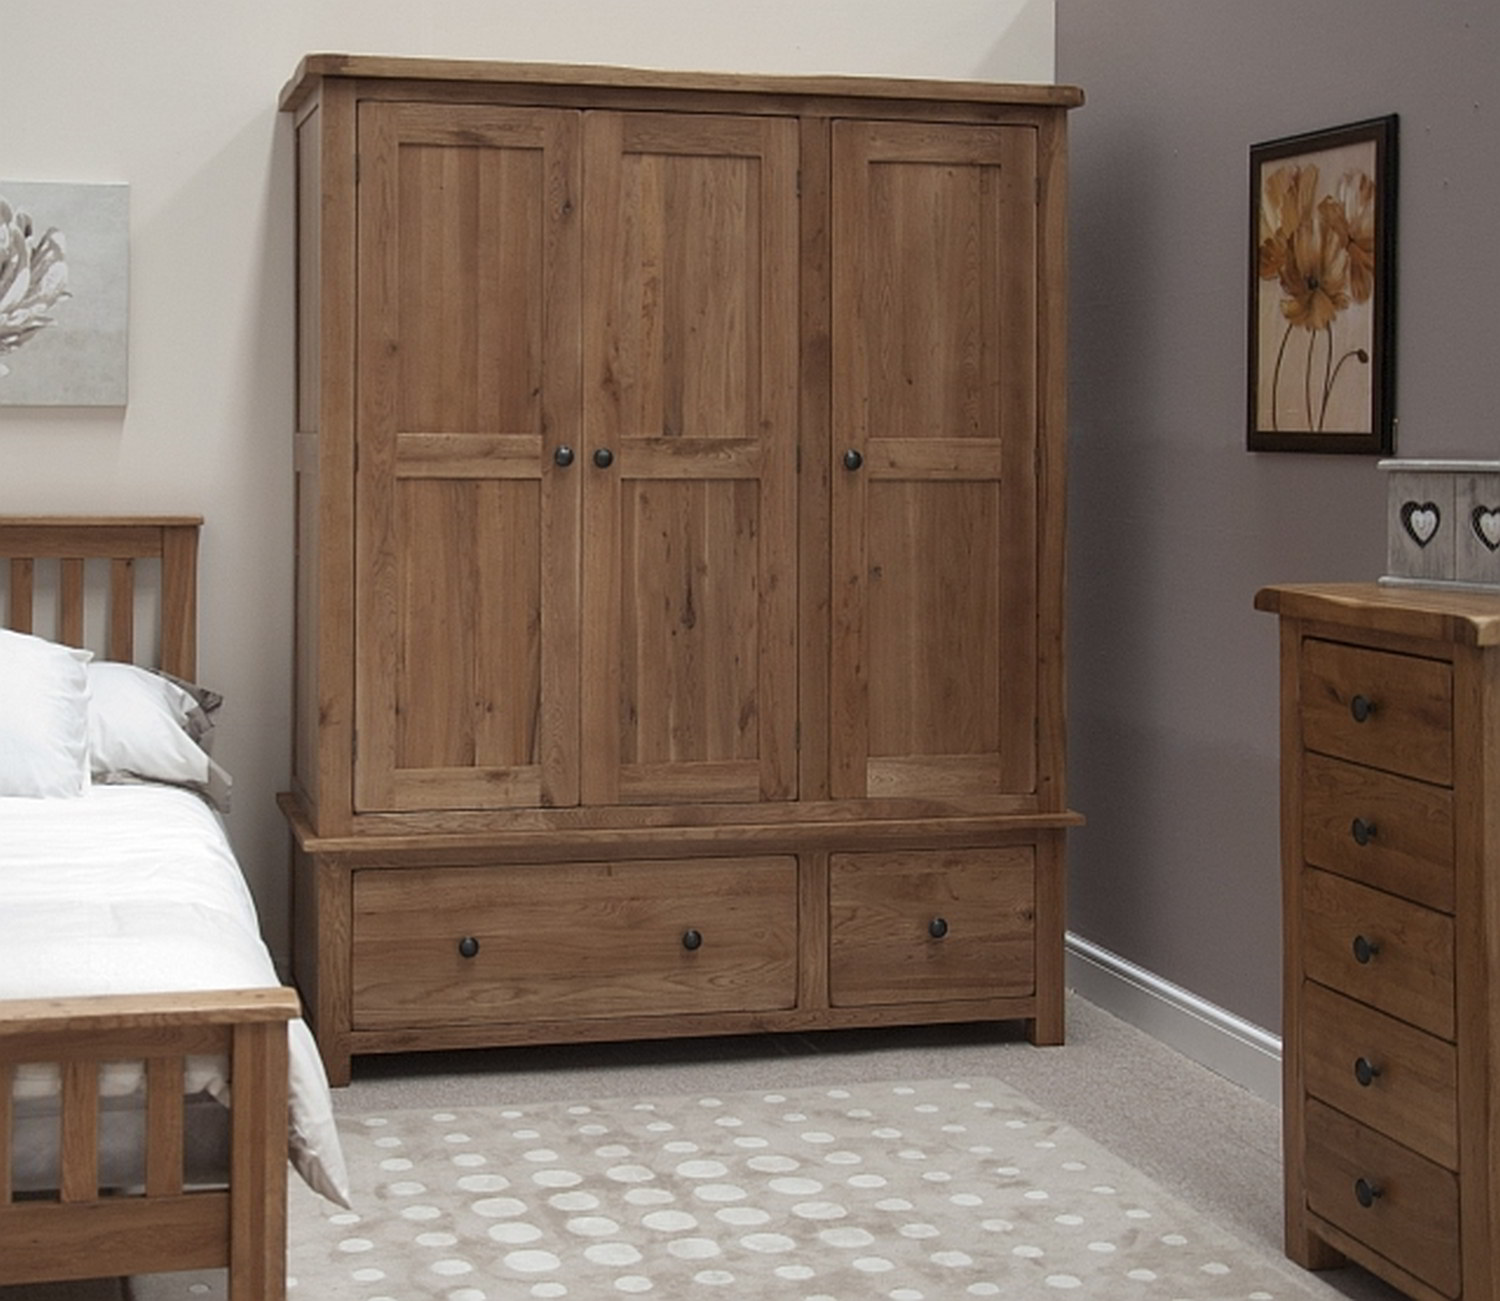 Cool Chatsworth Solid Oak Bedroom Furniture Triple Wardrobe With Drawers wooden wardrobe with drawers